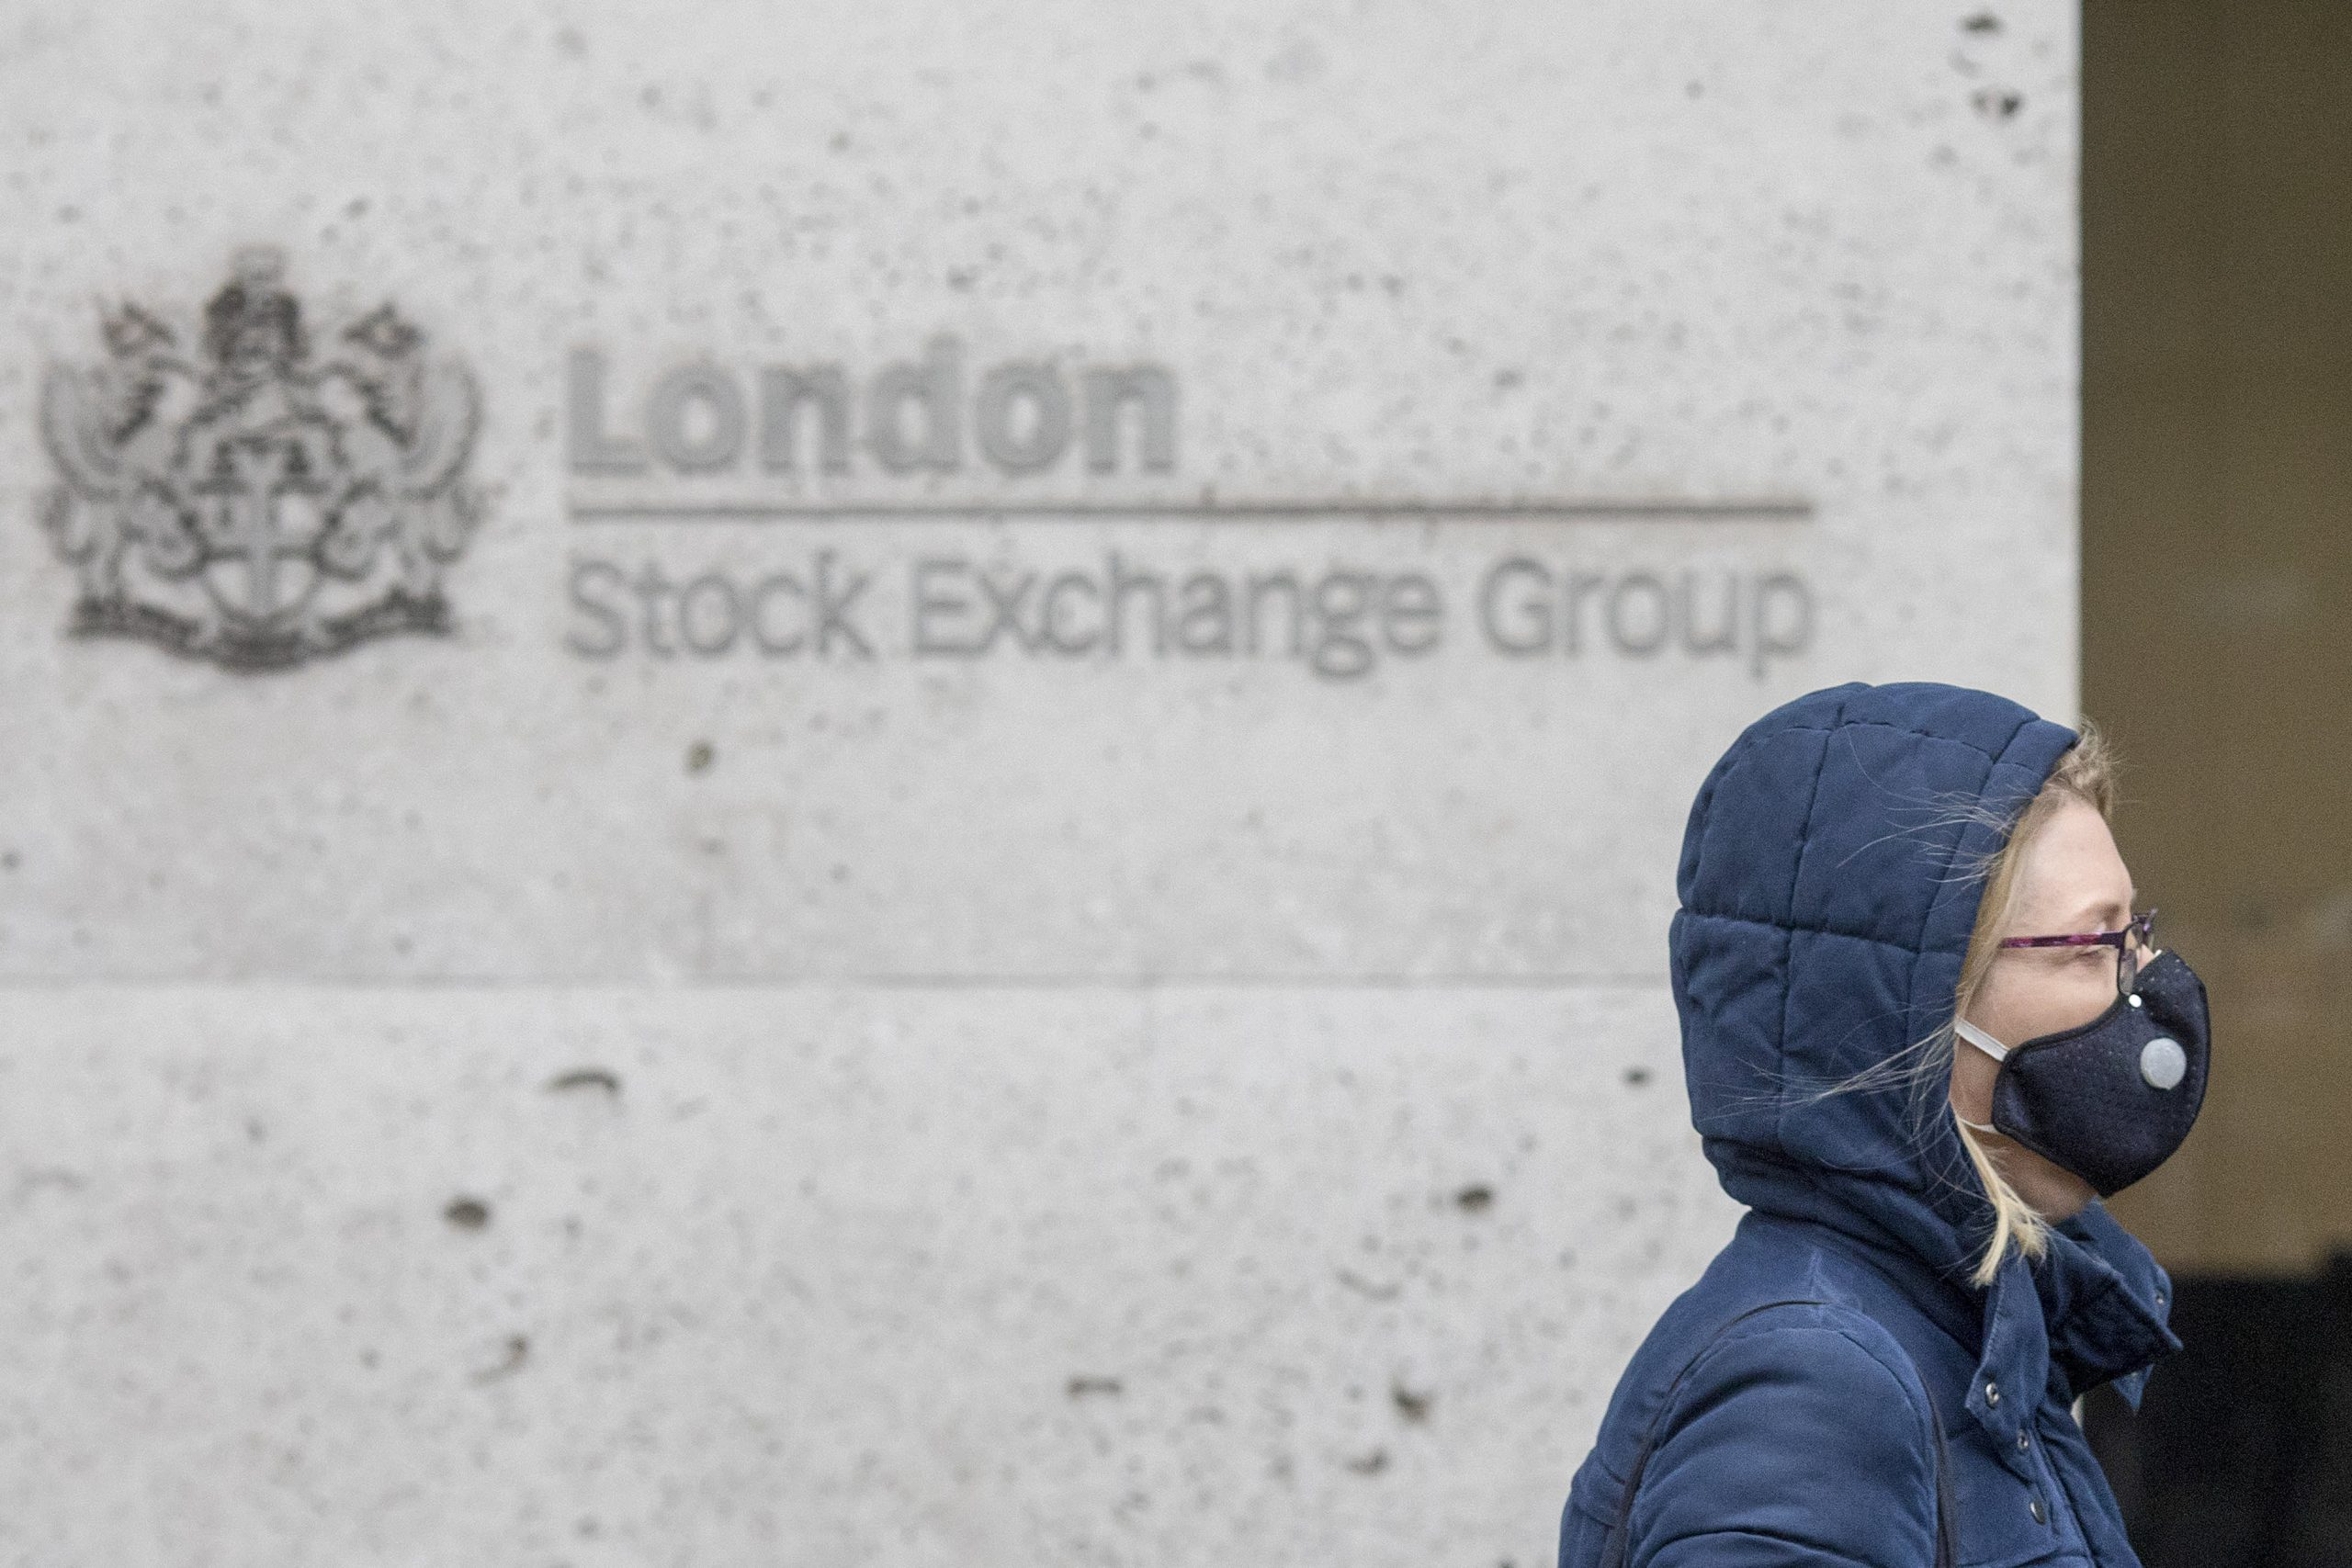 European stocks seen slightly higher as new coronavirus strain weighs